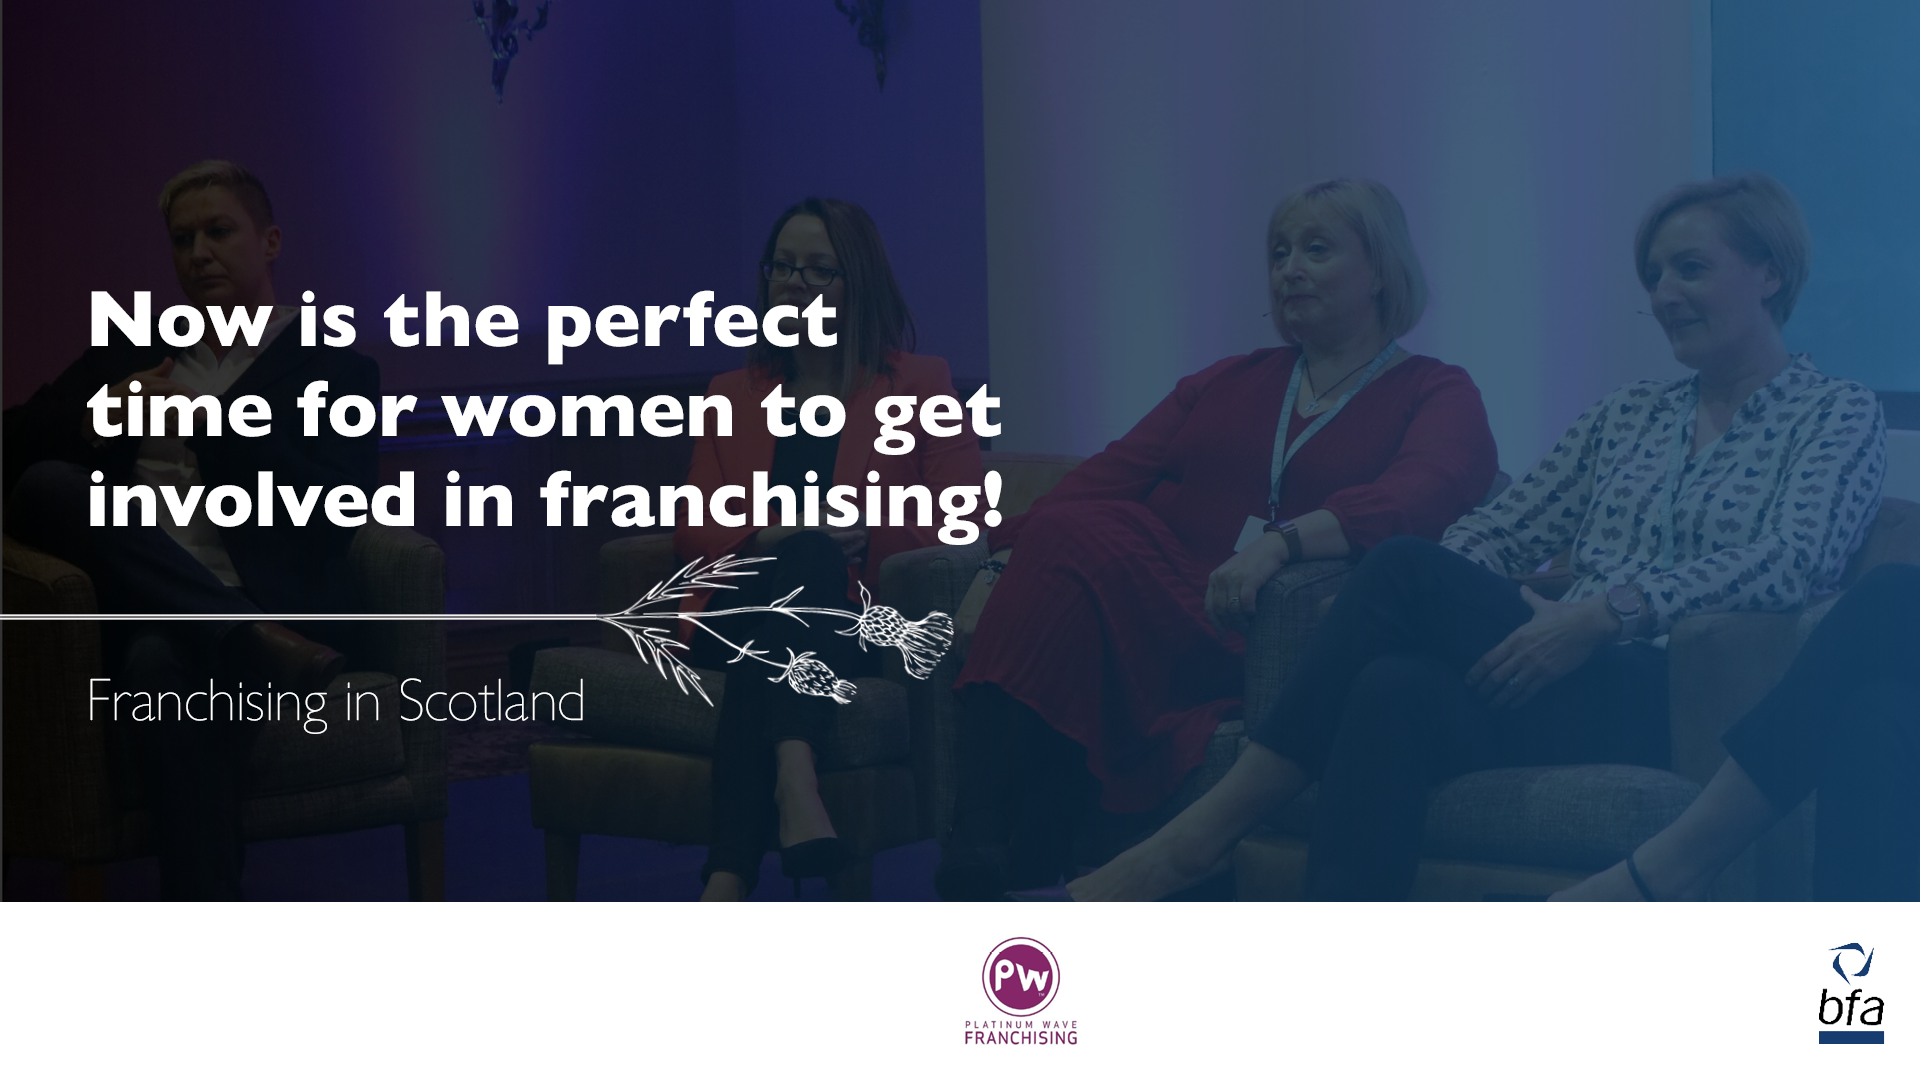 Now is the perfect time for women to get involved in franchising in Scotland!